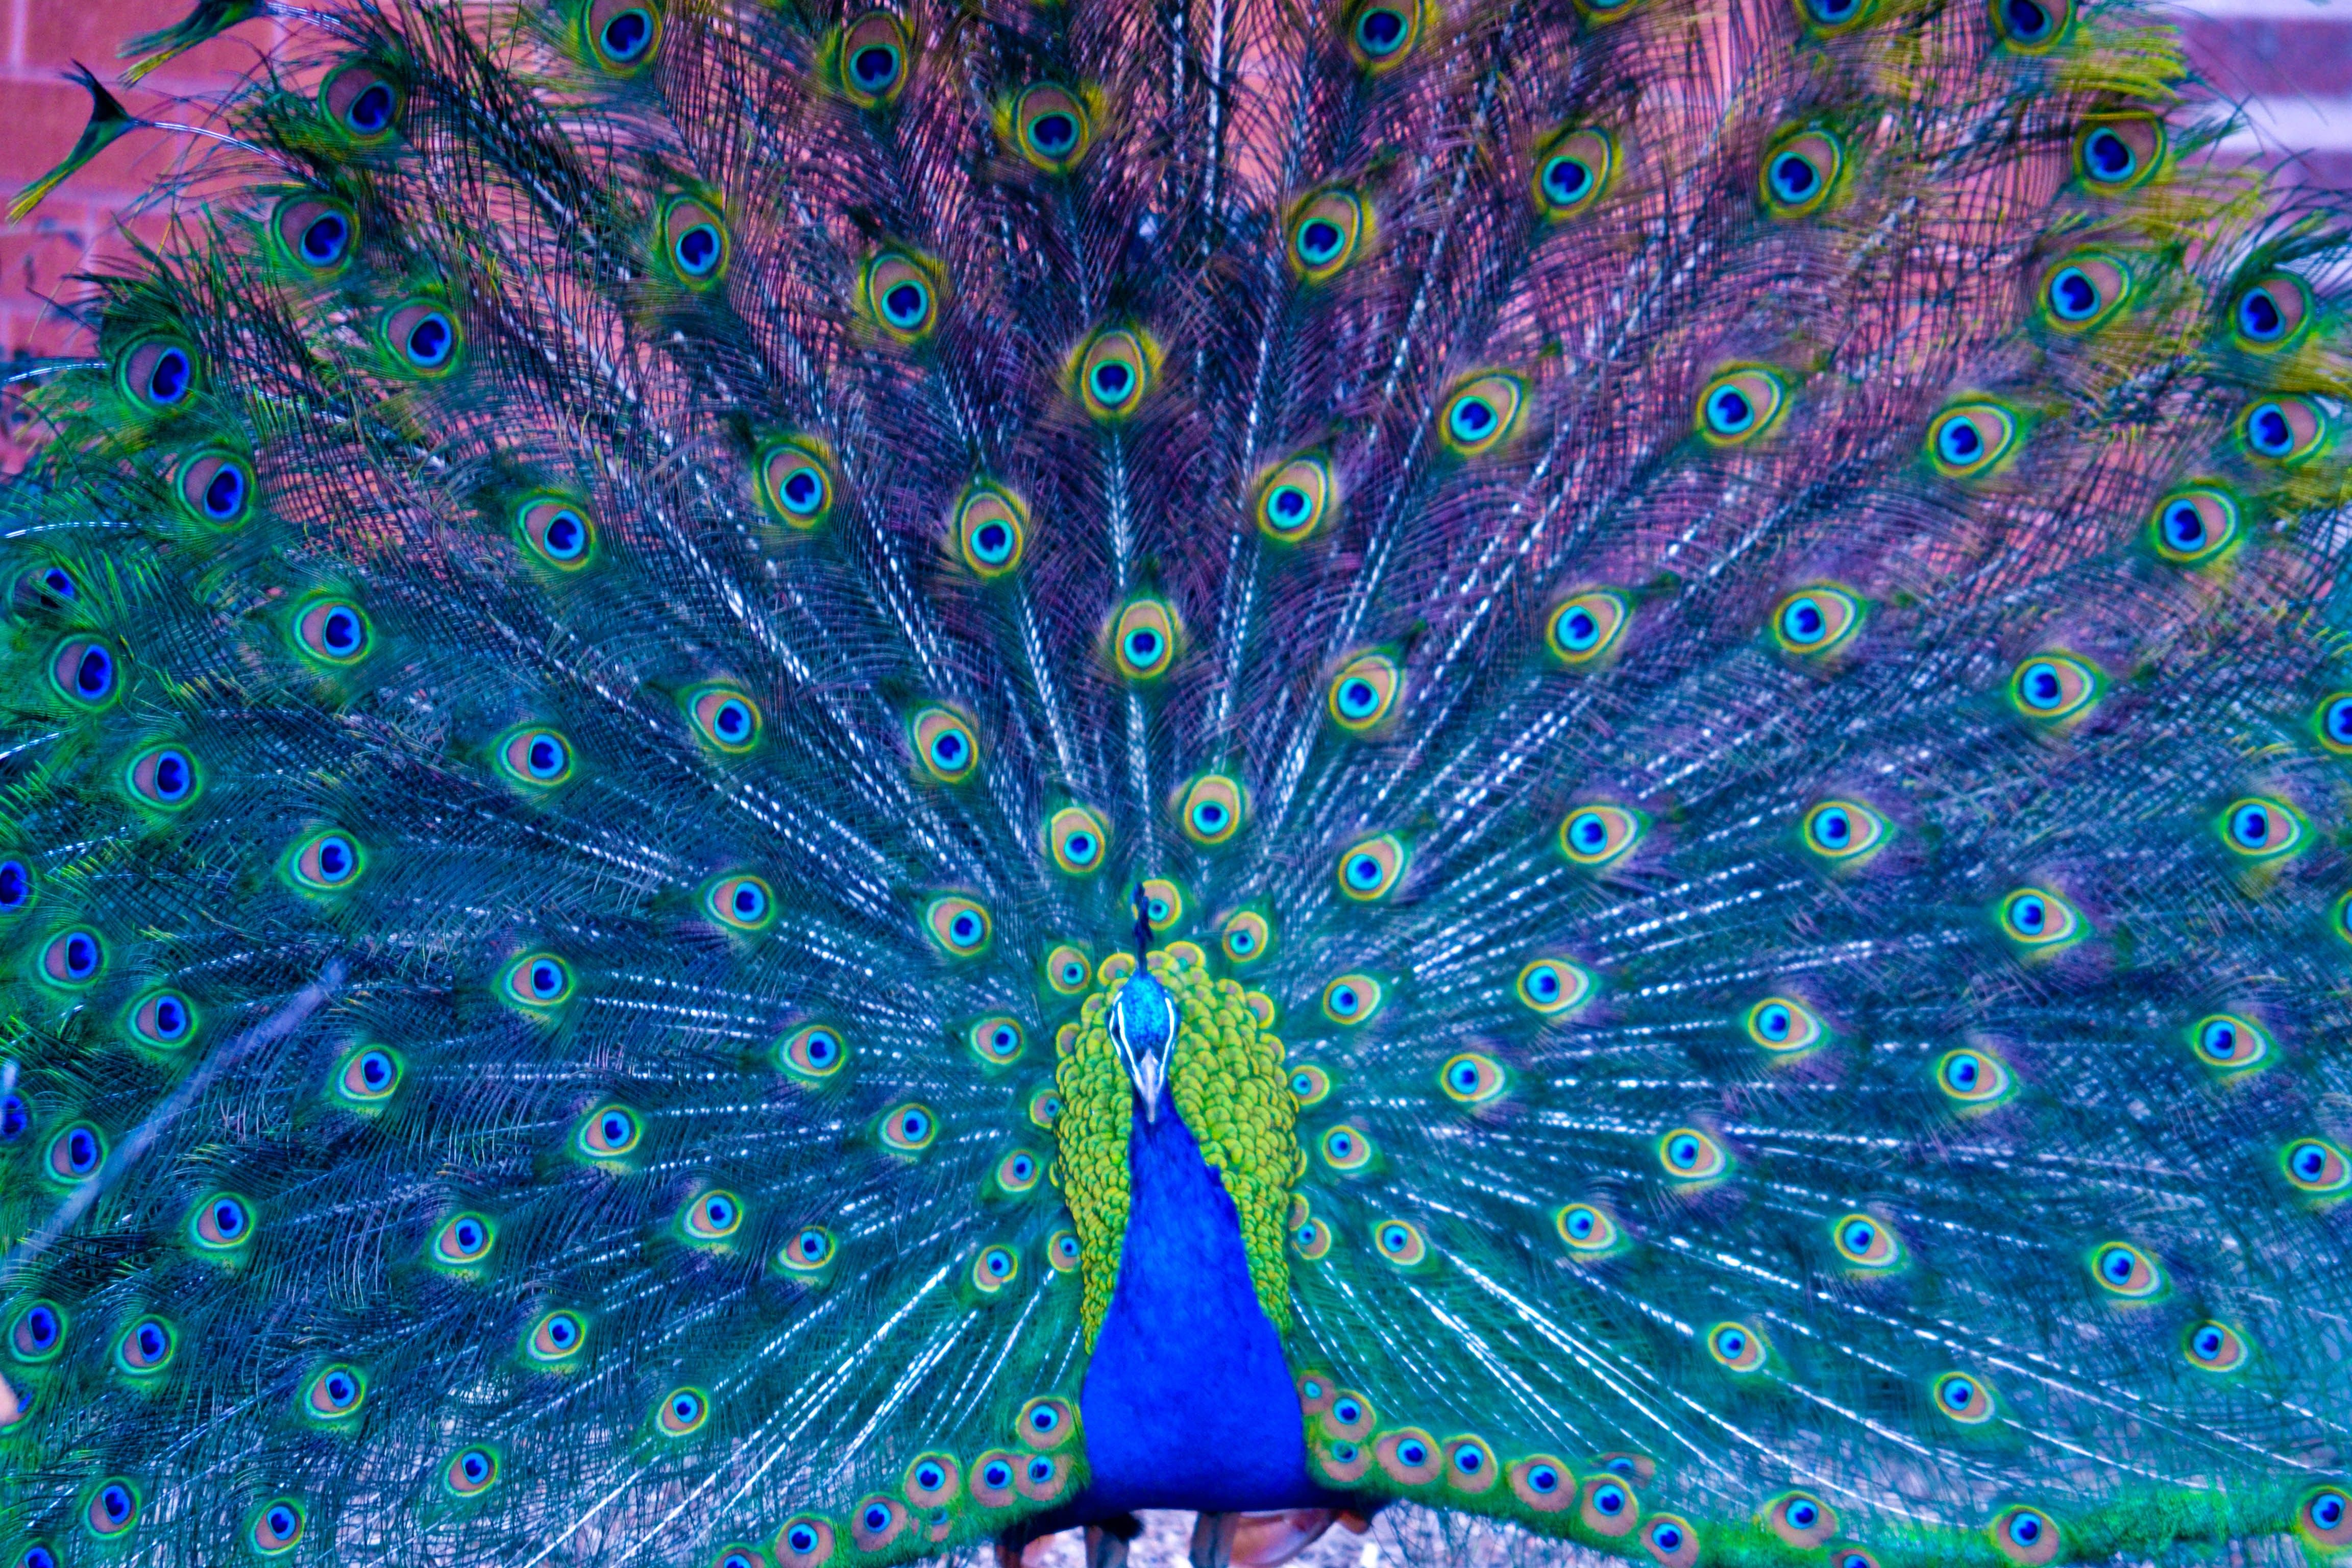 Colorful peacock pictures Peacock pictures, Peacock